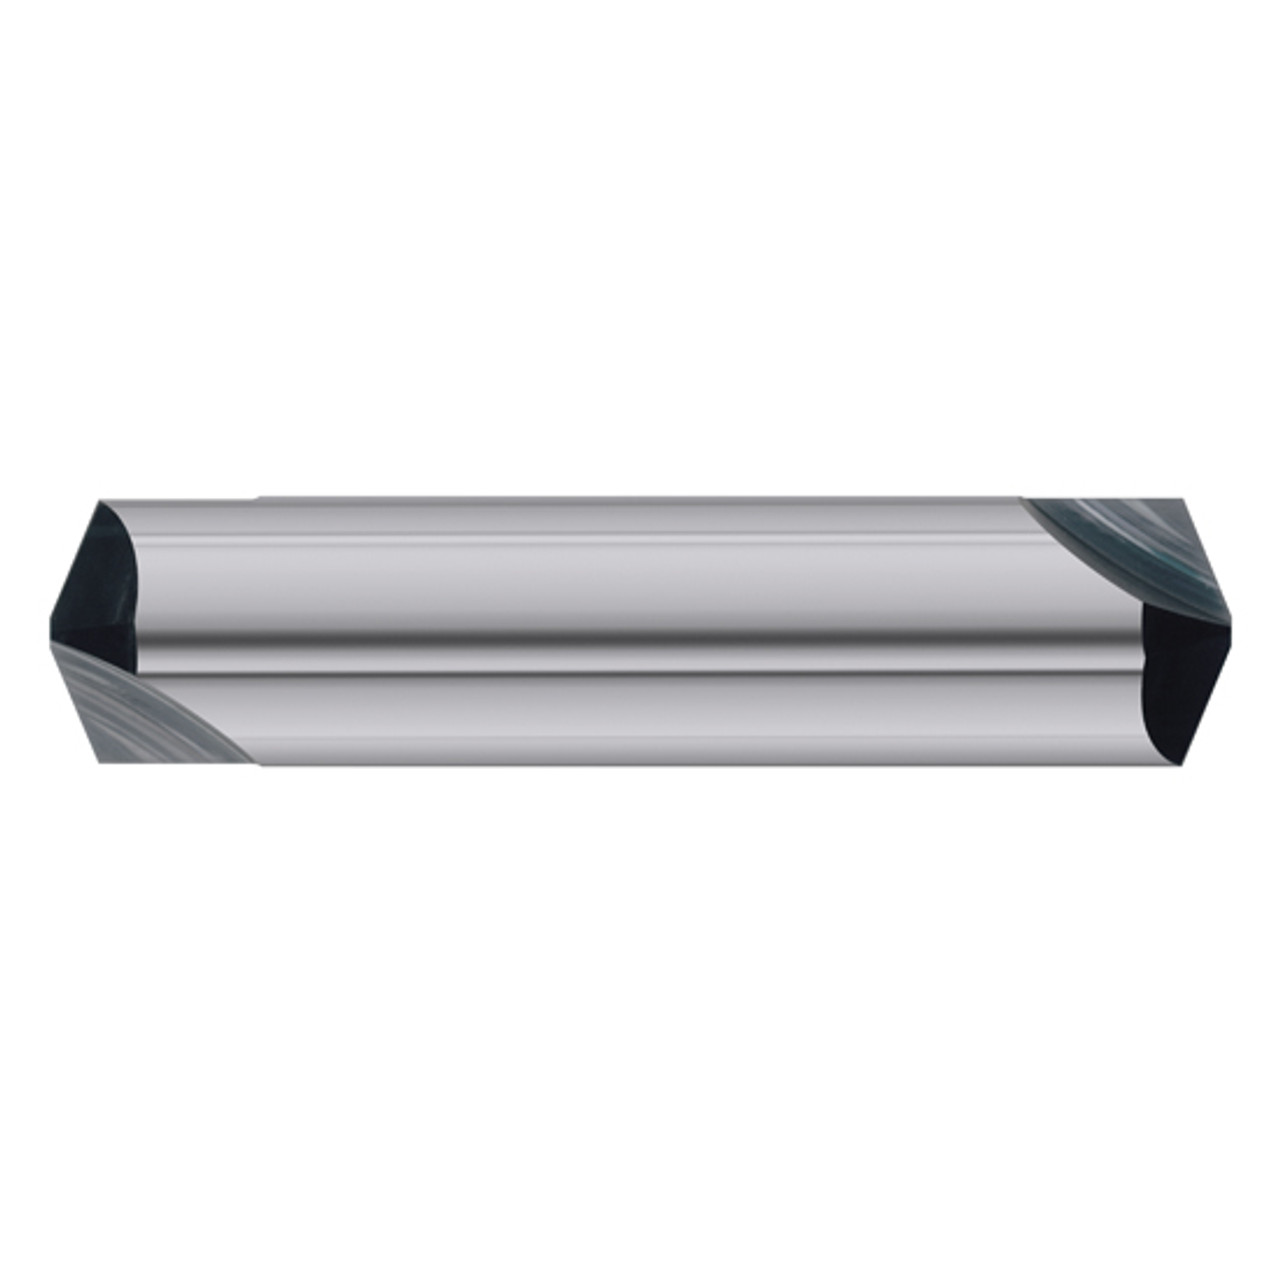 """1//4/"""" 2 FLUTE DOUBLE END 120 DEGREE TiAlN CARBIDE CHAMFER MILL"""